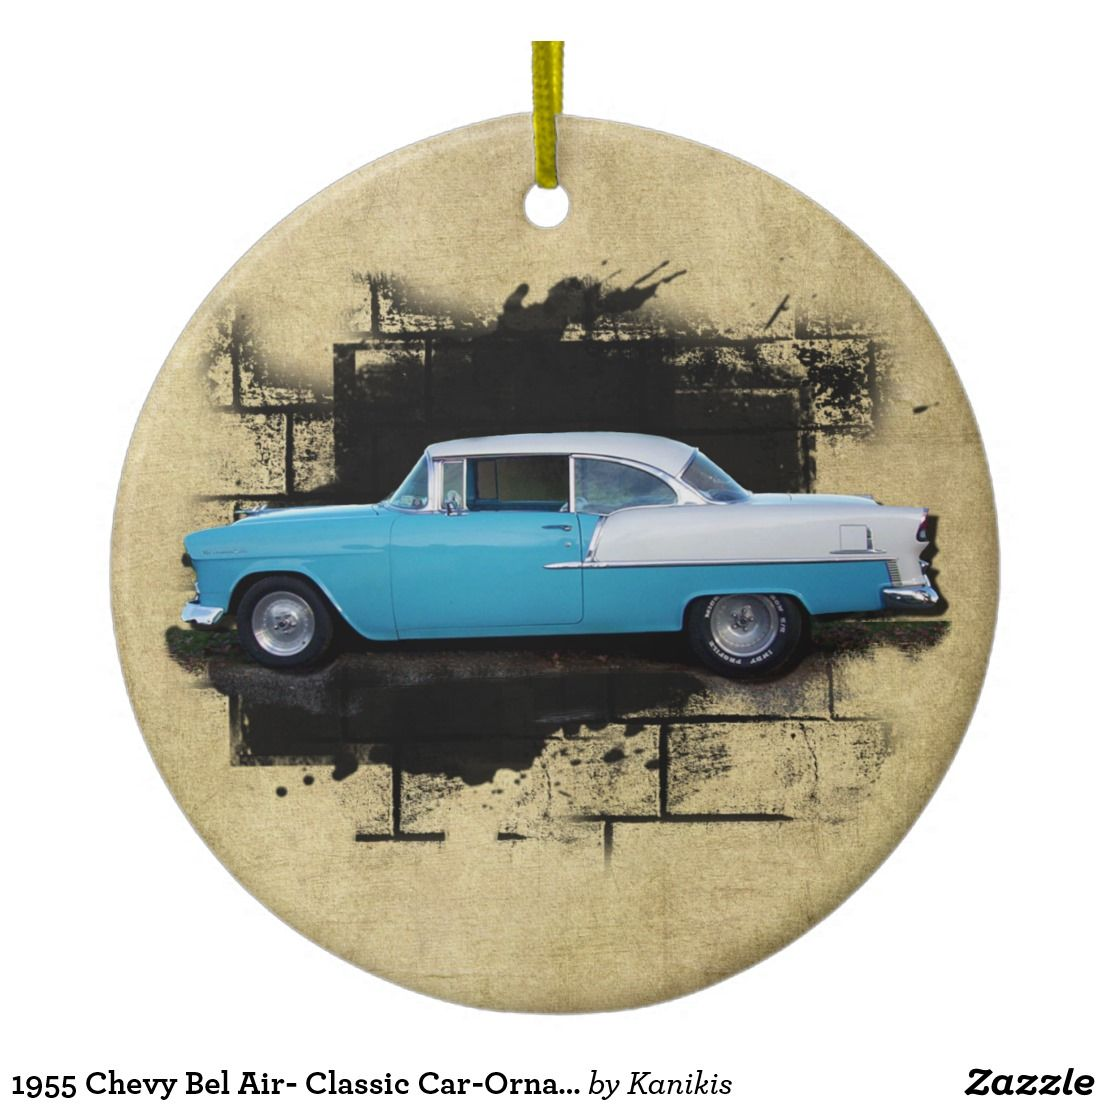 1955 Chevy Bel Air- Classic Car-Ornament Ceramic Ornament | Zazzle.com